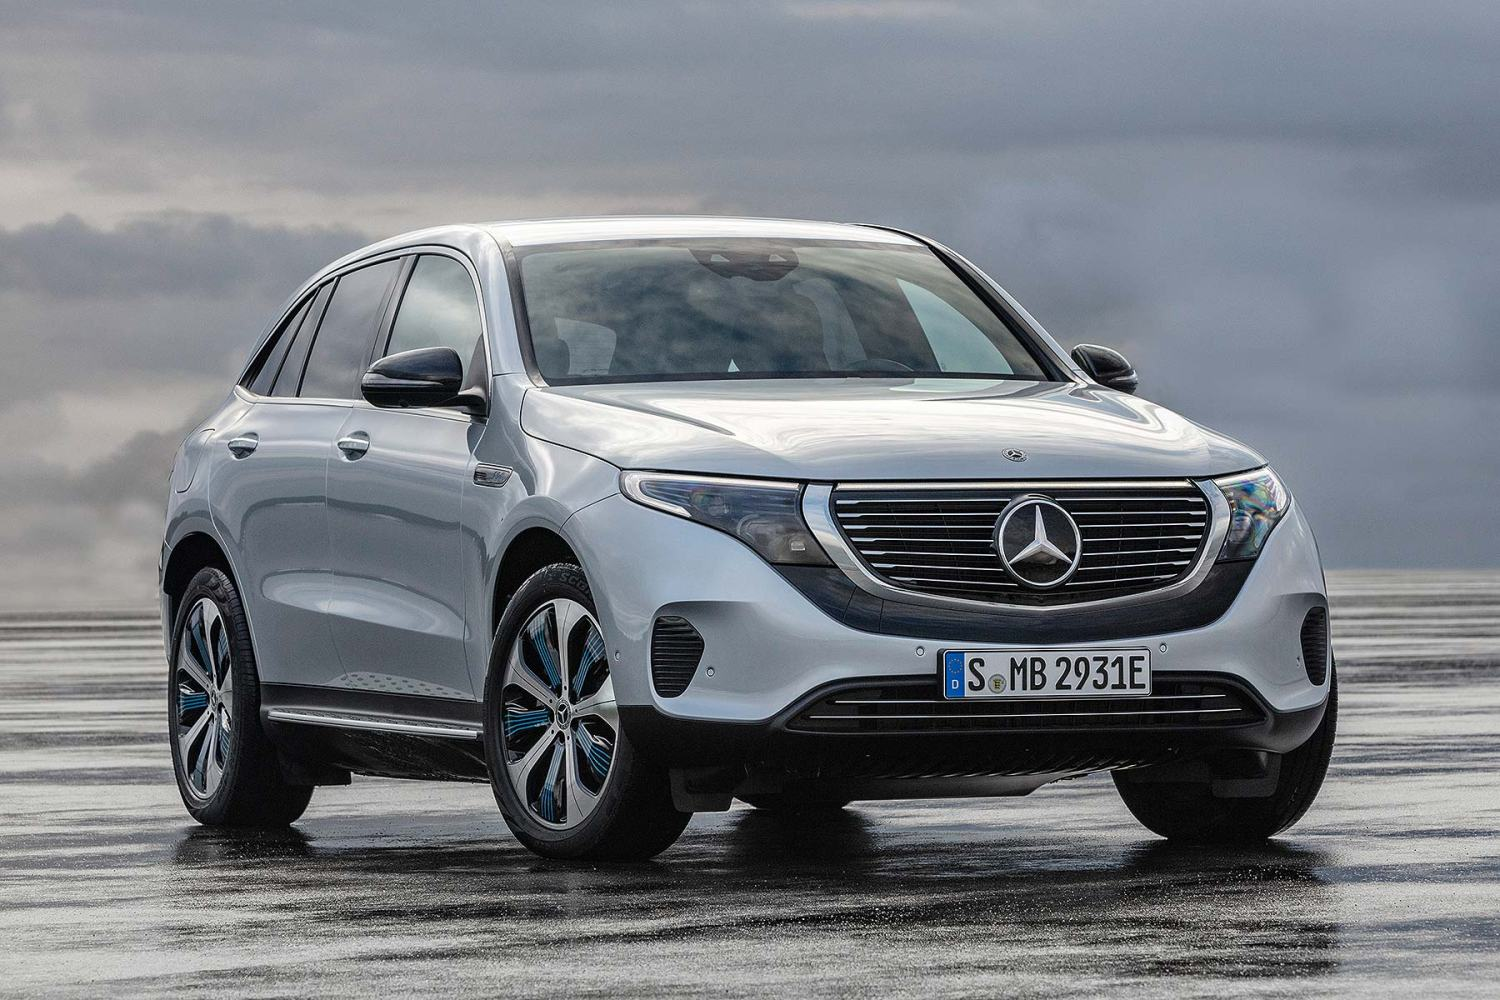 cabfdbea1 Mercedes-Benz EQC electric SUV is Germany's first response to Tesla ...